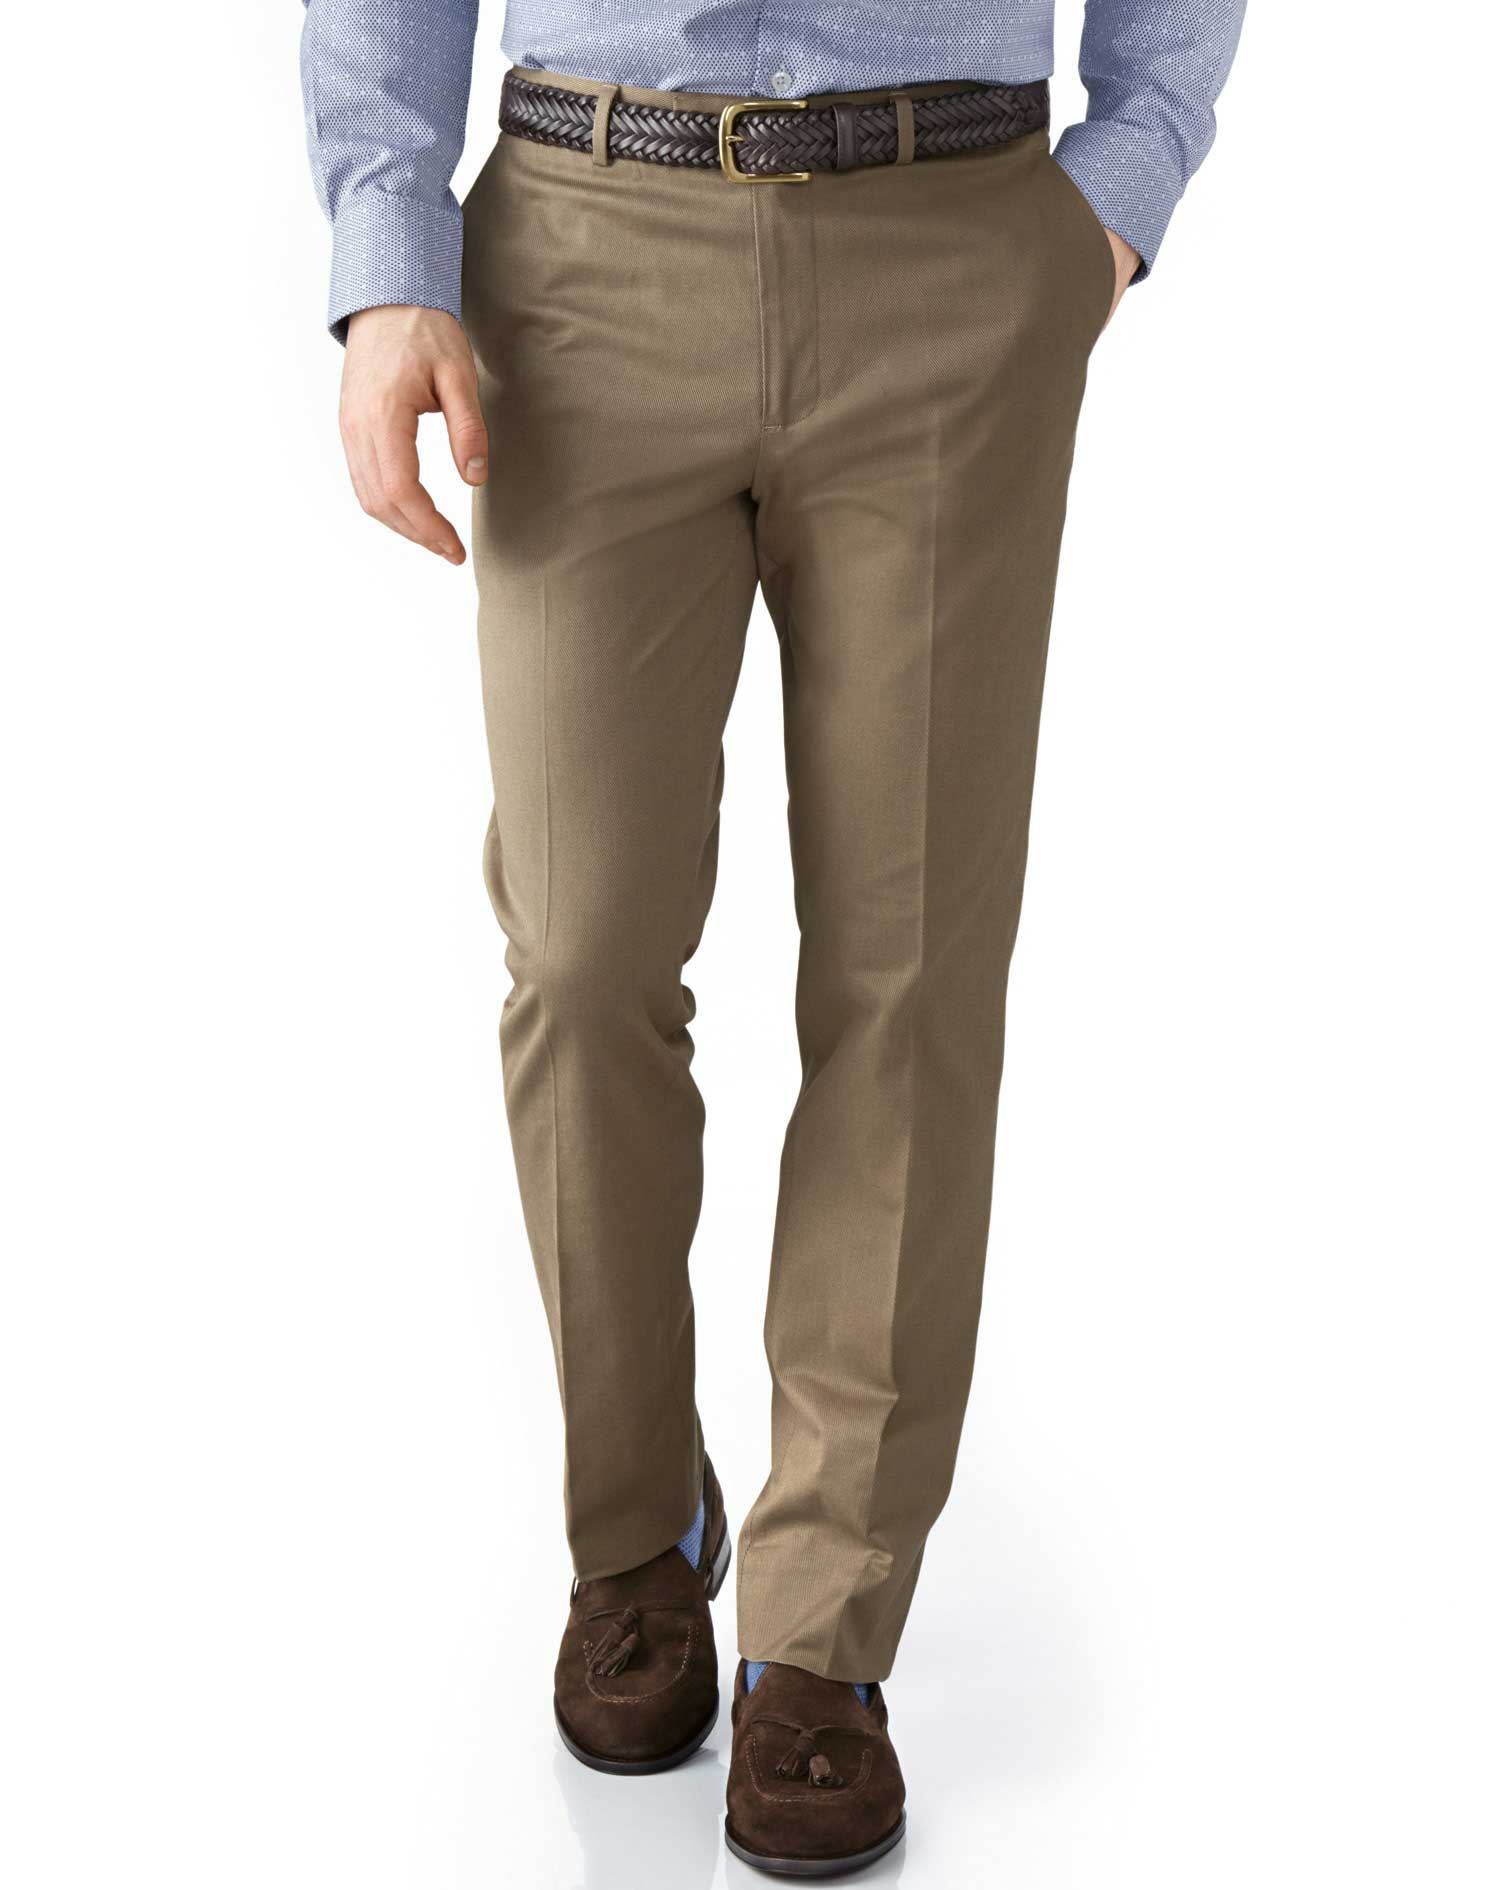 Tan Extra Slim Fit Stretch Cavalry Twill Trousers Size W38 L34 by Charles Tyrwhitt